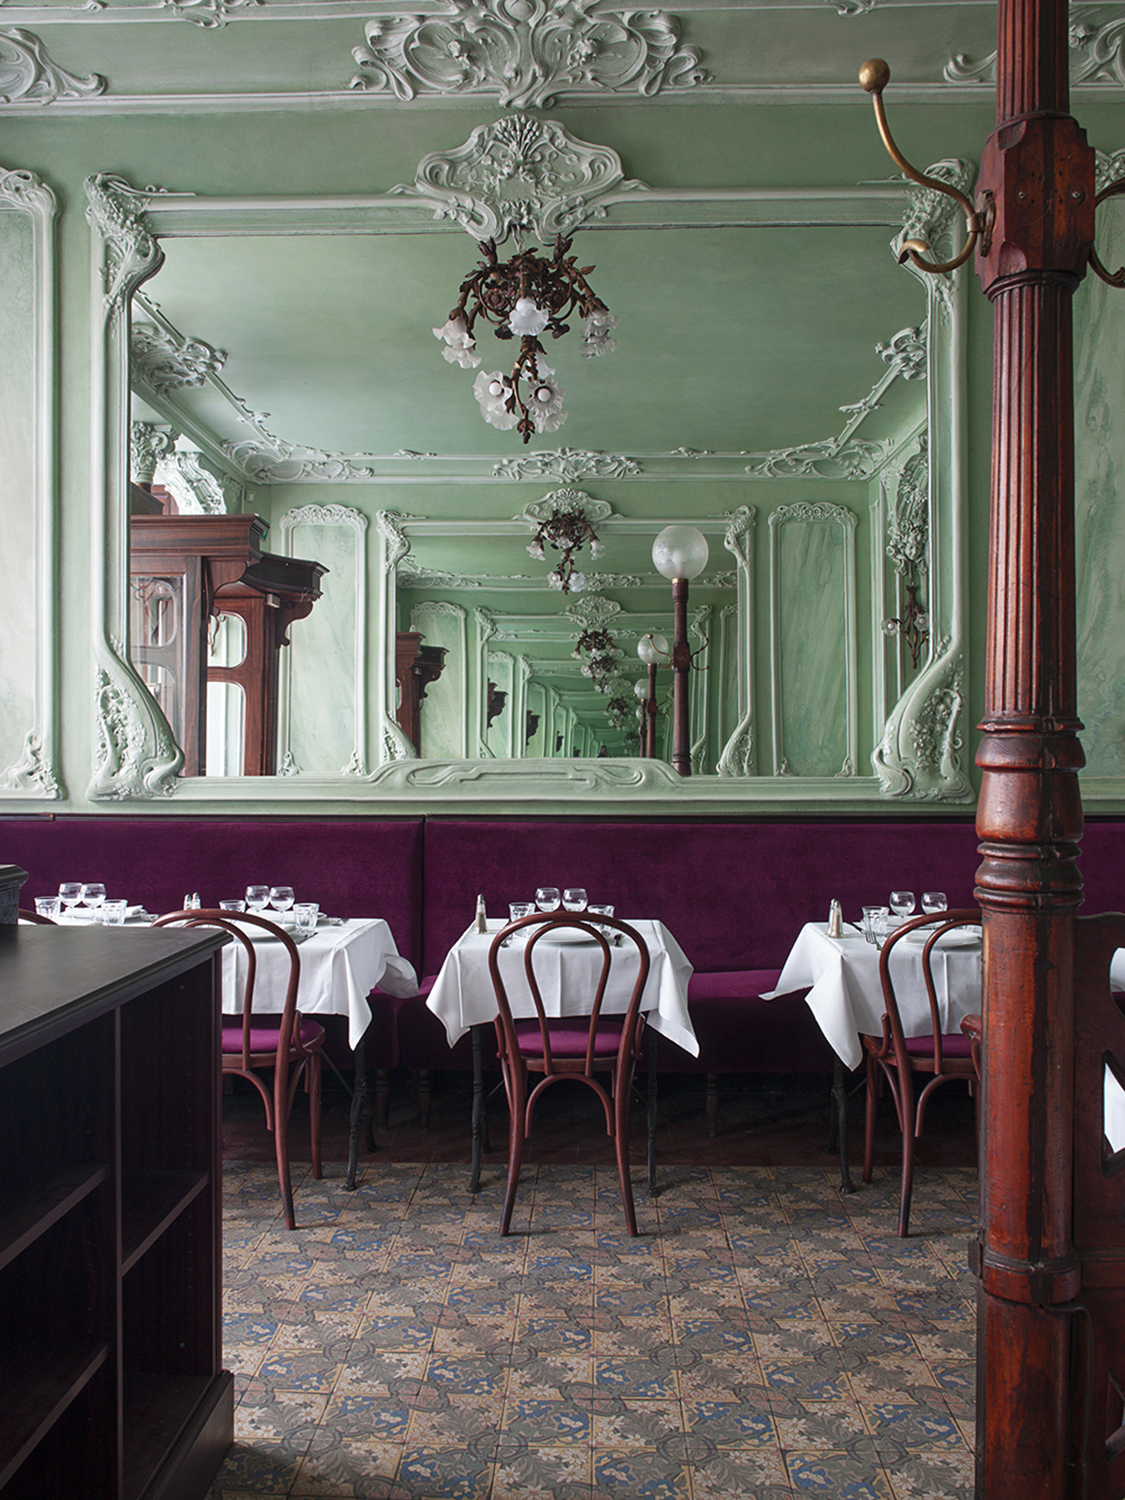 Restaurant Design Paris Restaurant Bouillon Julien Paris France The Cool Hunter The